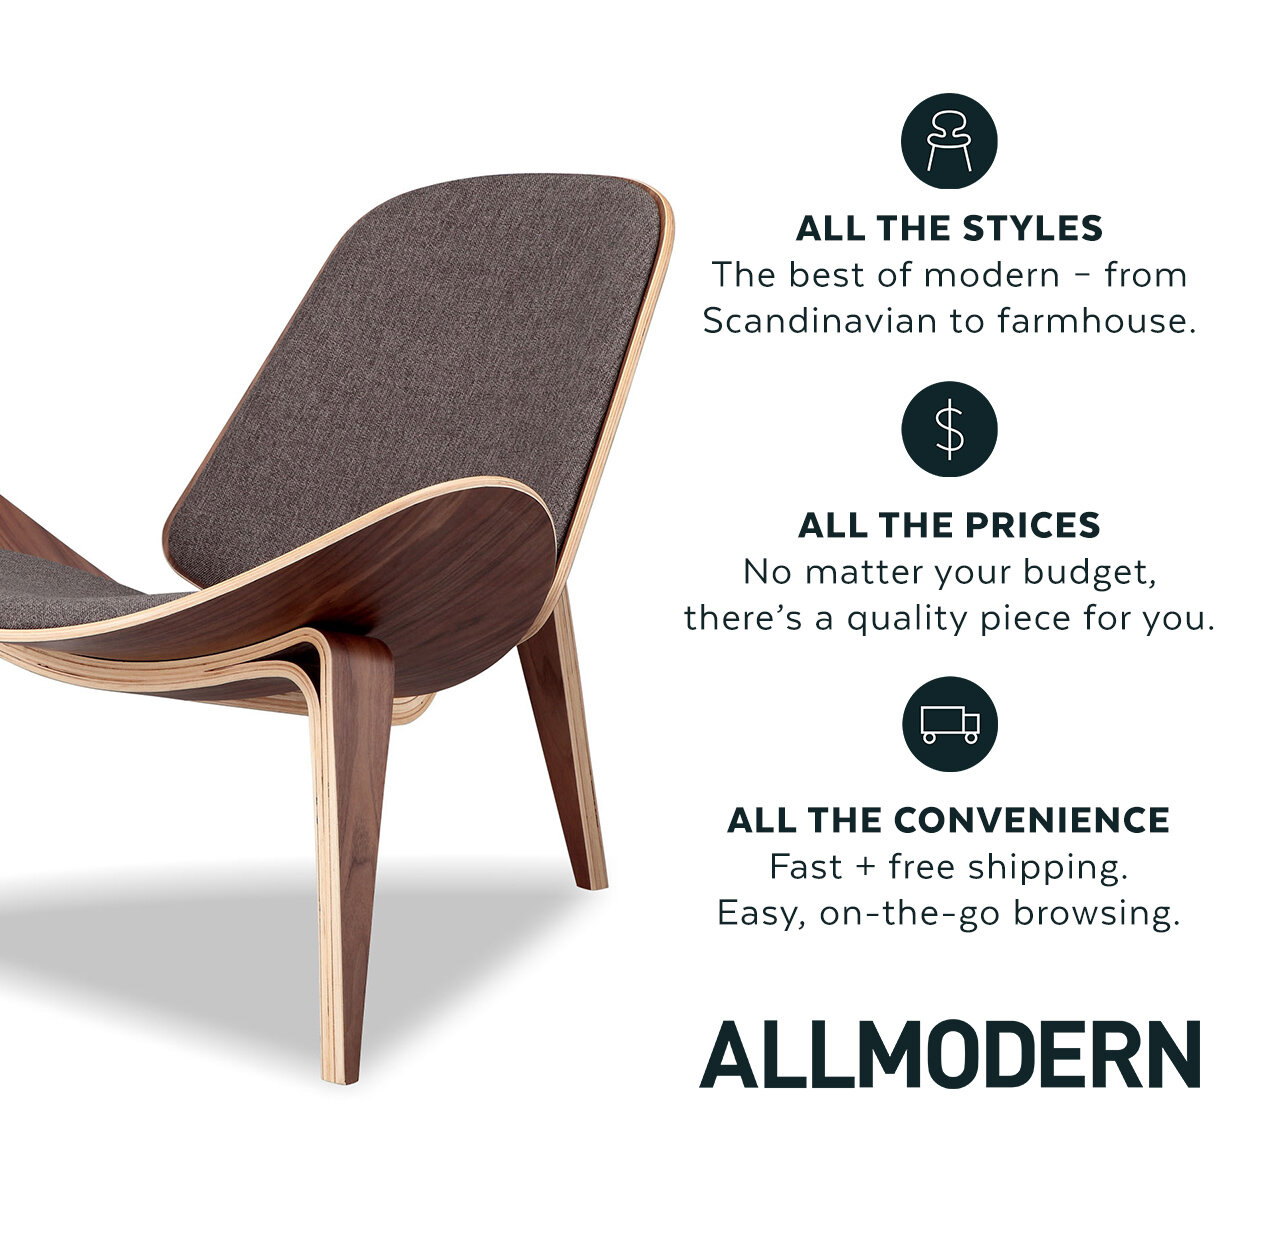 AllModern: All the Styles, All the Prices, All the Convenience